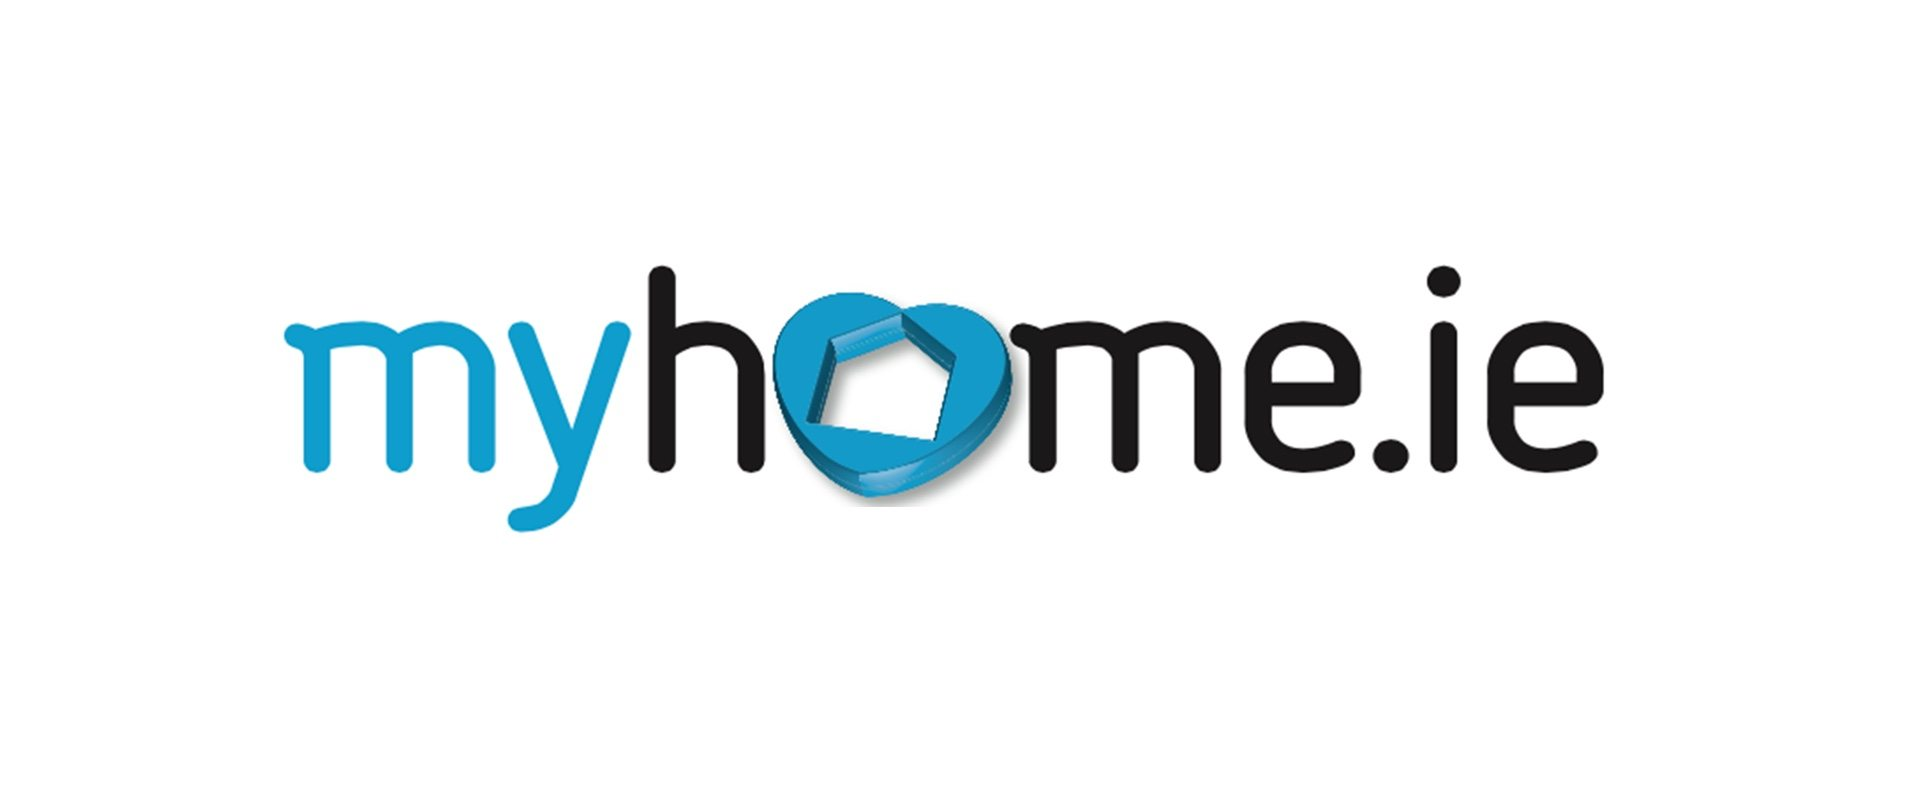 MyHome.ie Consumer Sentiment Survey 2020